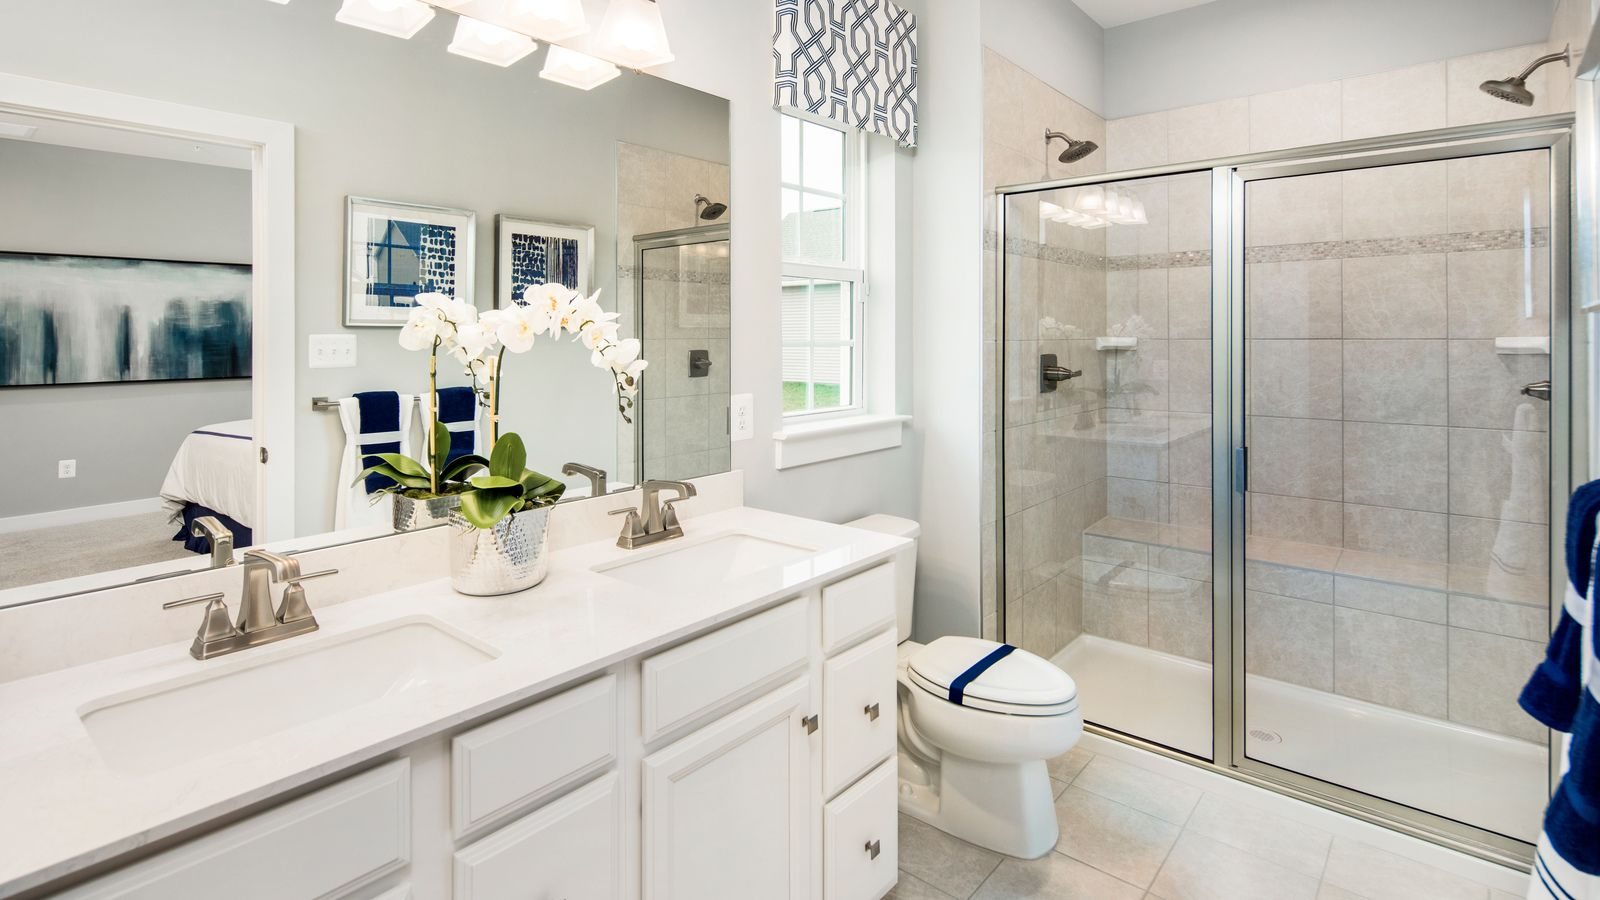 Bathroom featured in the Ashbrooke By Ryan Homes in Sussex, DE